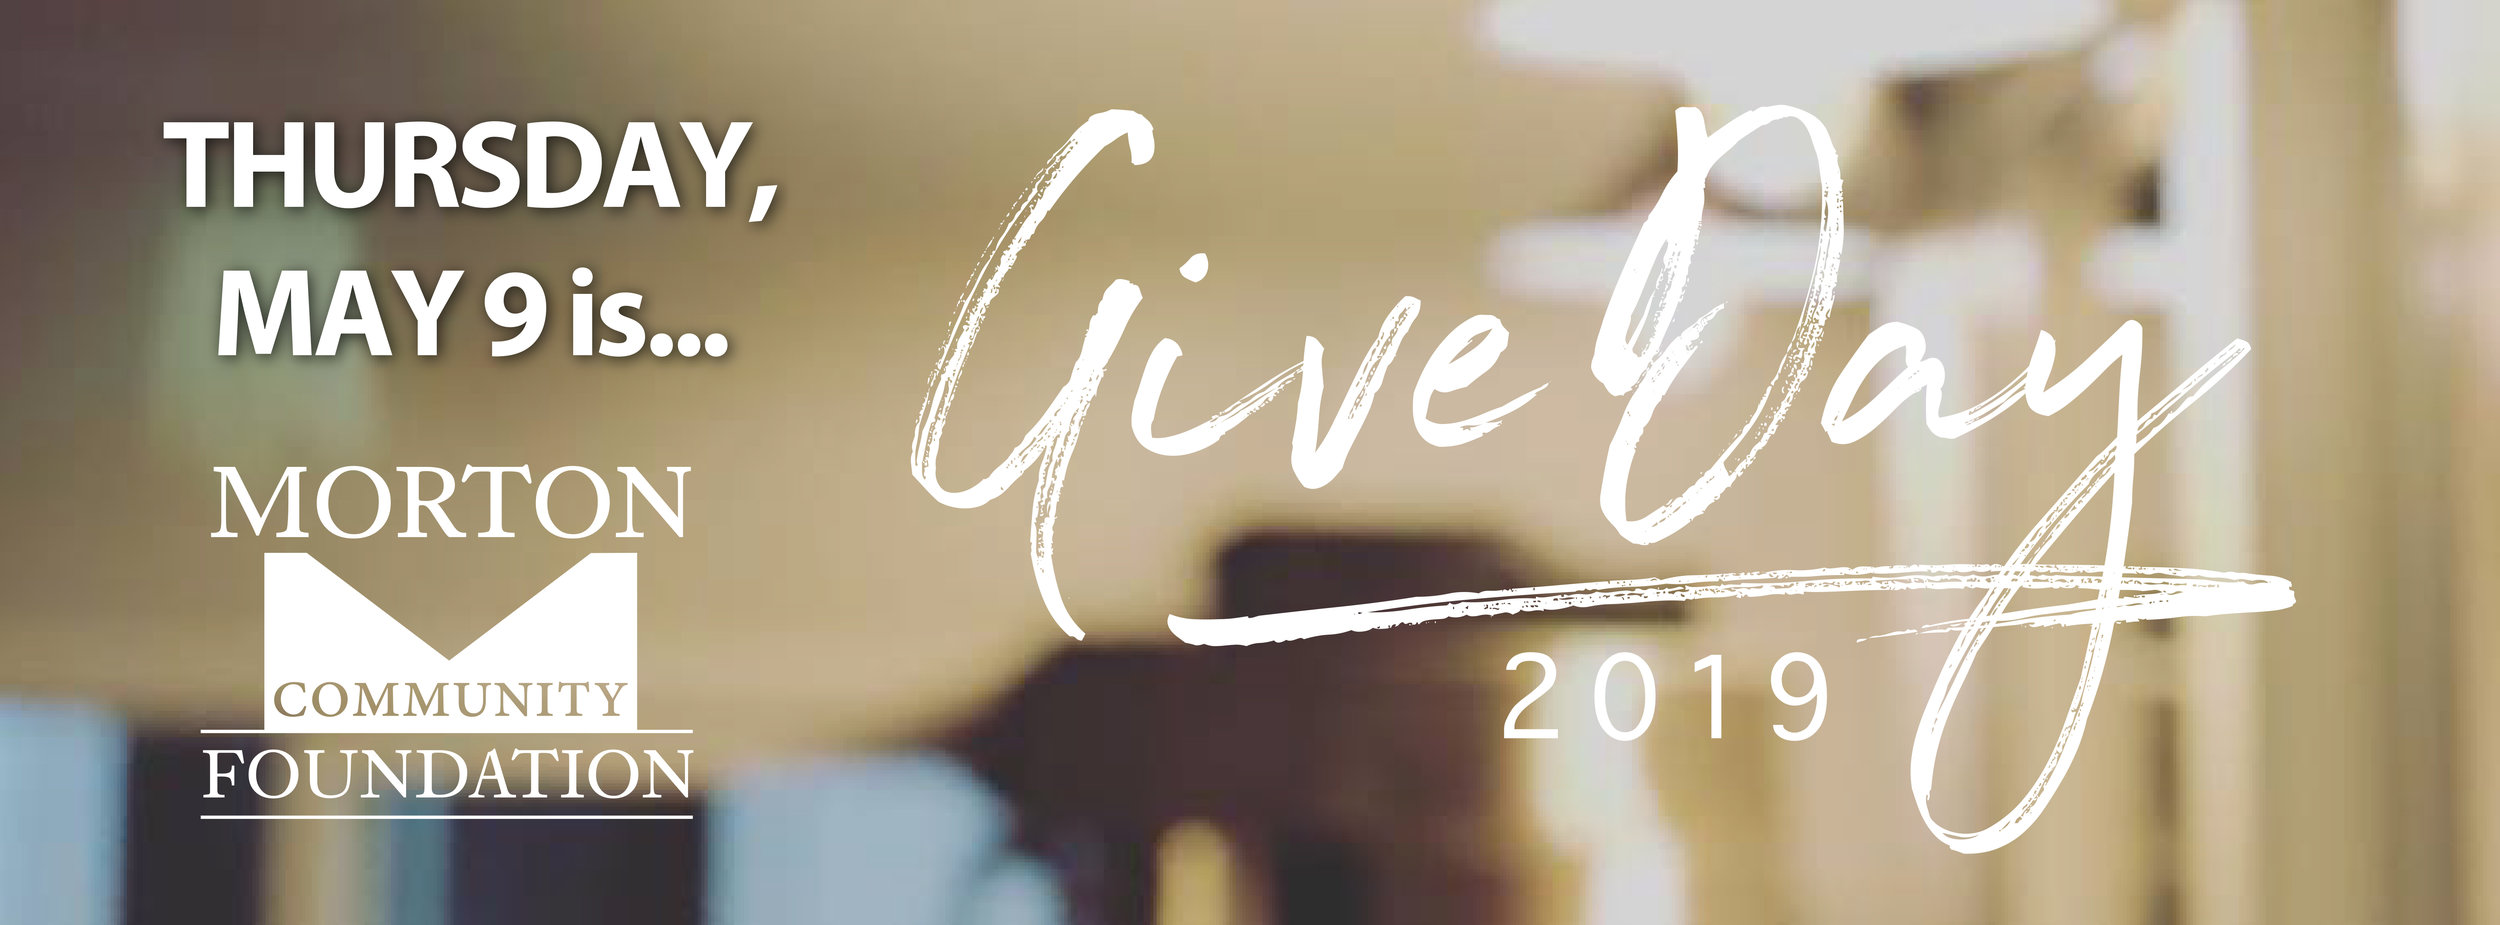 2019 Foundation Give Day Facebook Profile.jpg